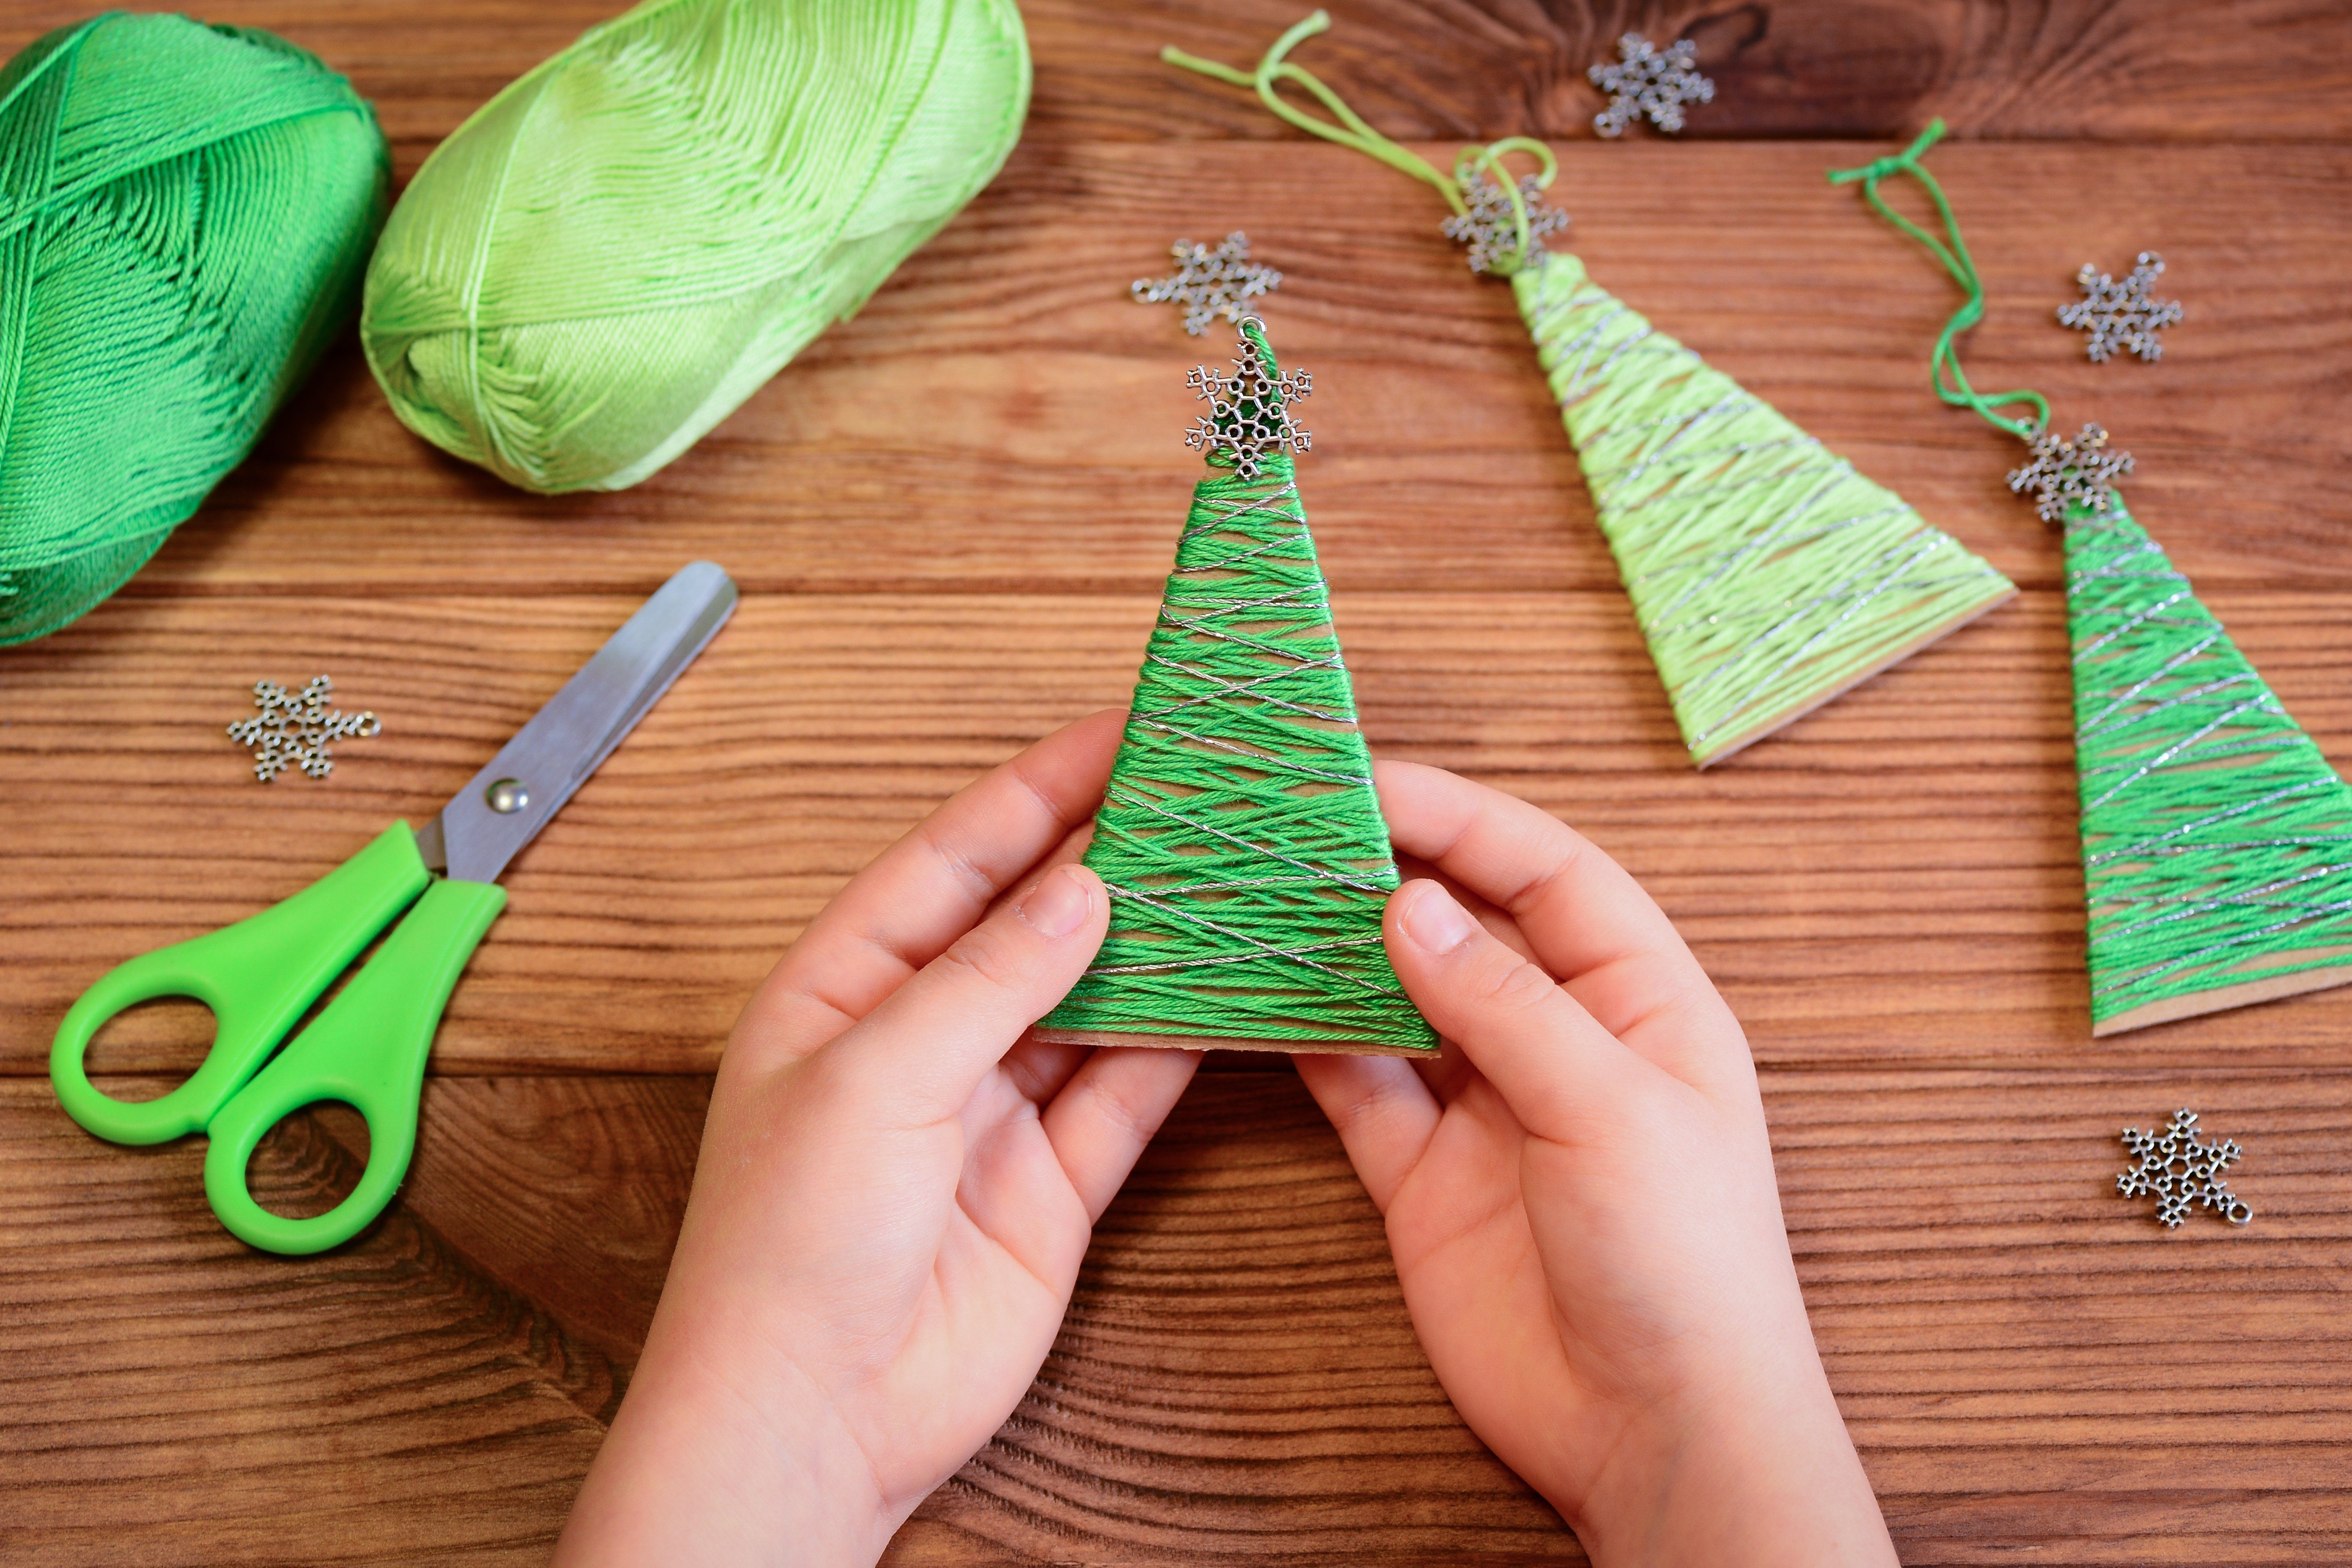 Kid is holding a Christmas tree decoration in his hands. Kid is showing a Christmas tree decoration. Merry Christmas tree project for kids. Scissors, green cotton yarn on a wooden table